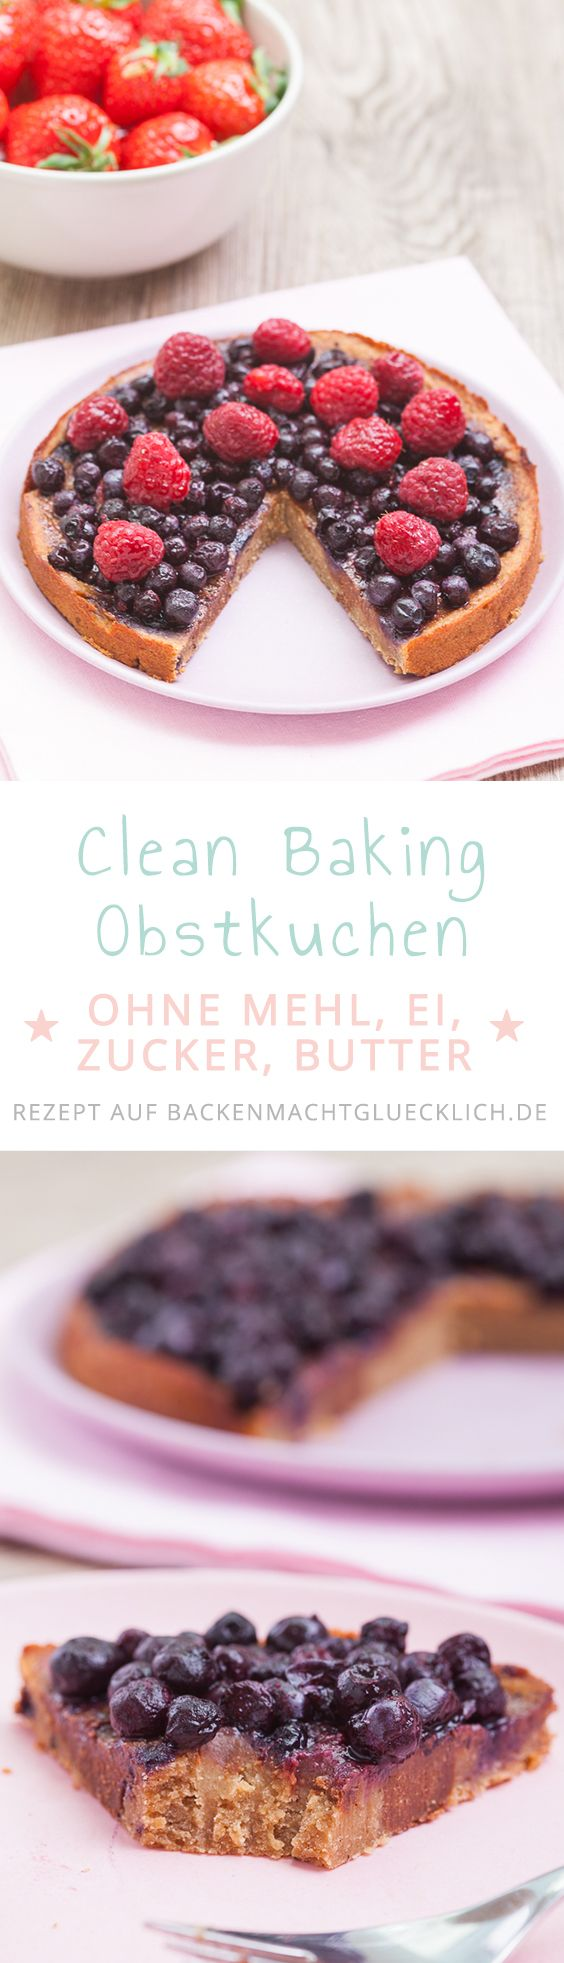 95 best Clean Baking * Rezepte* images on Pinterest | Healthy eating ...